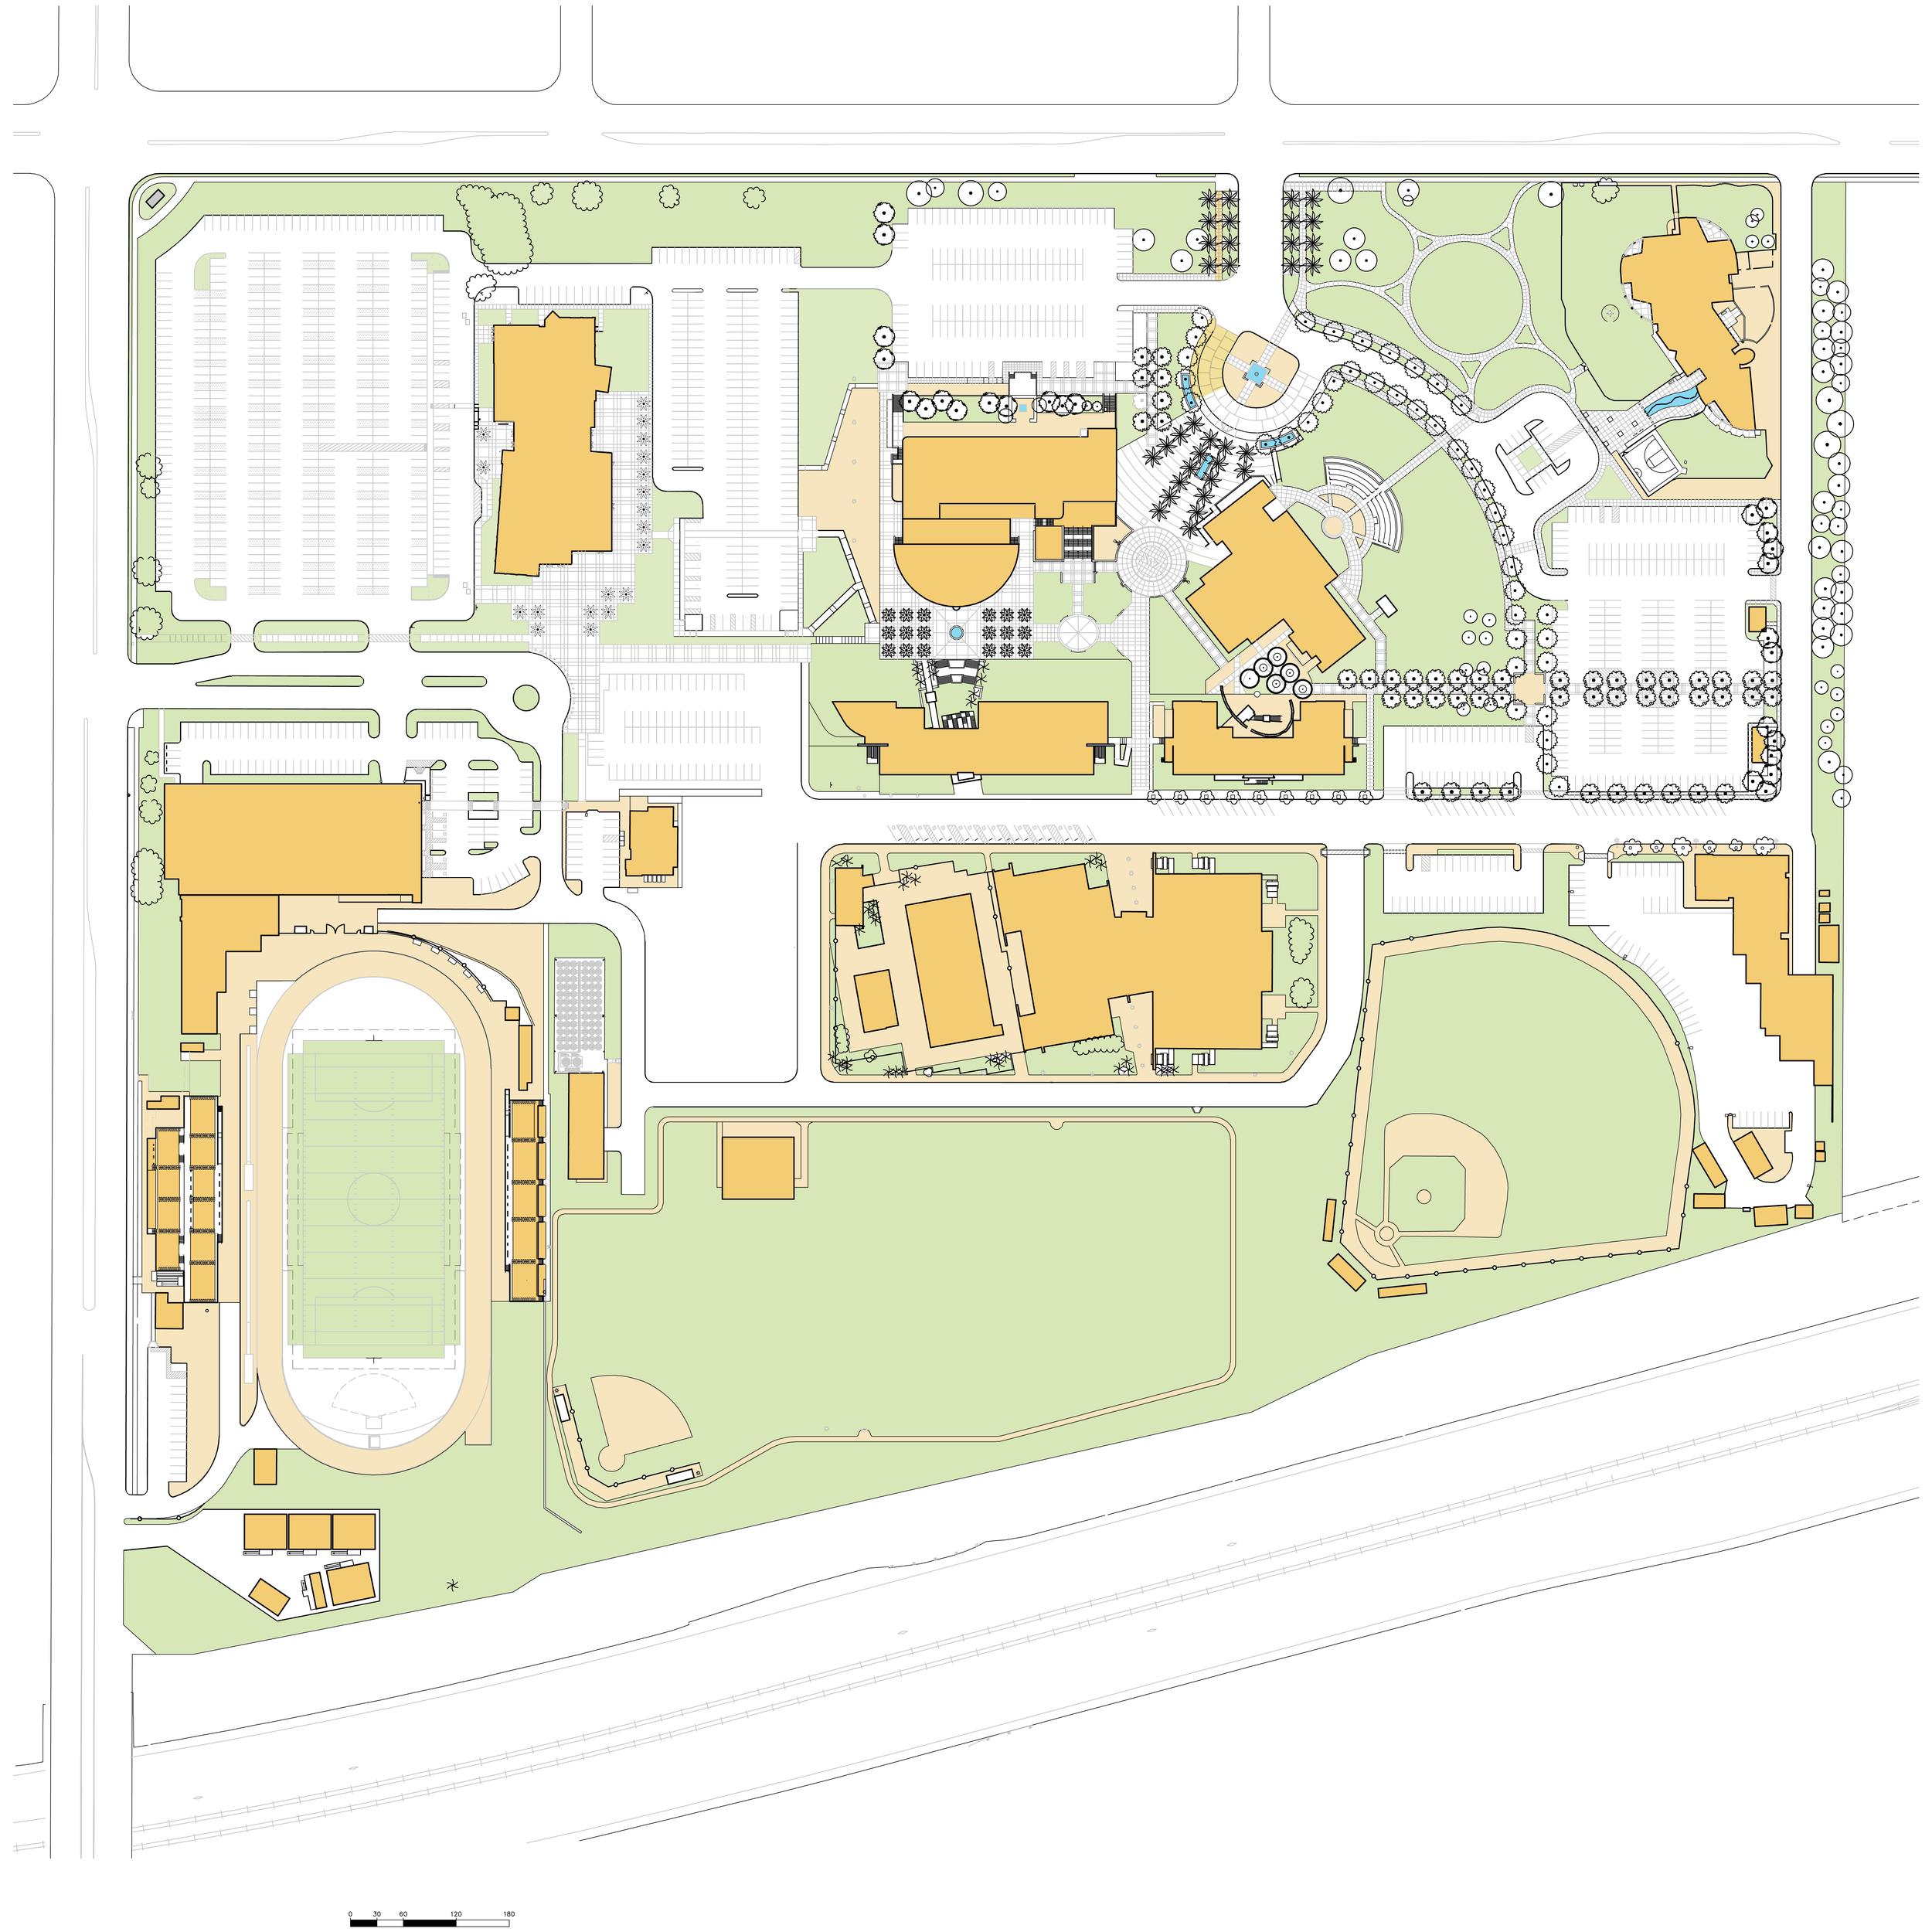 LA Southwest College Campus Wide Accessibility Master Plan